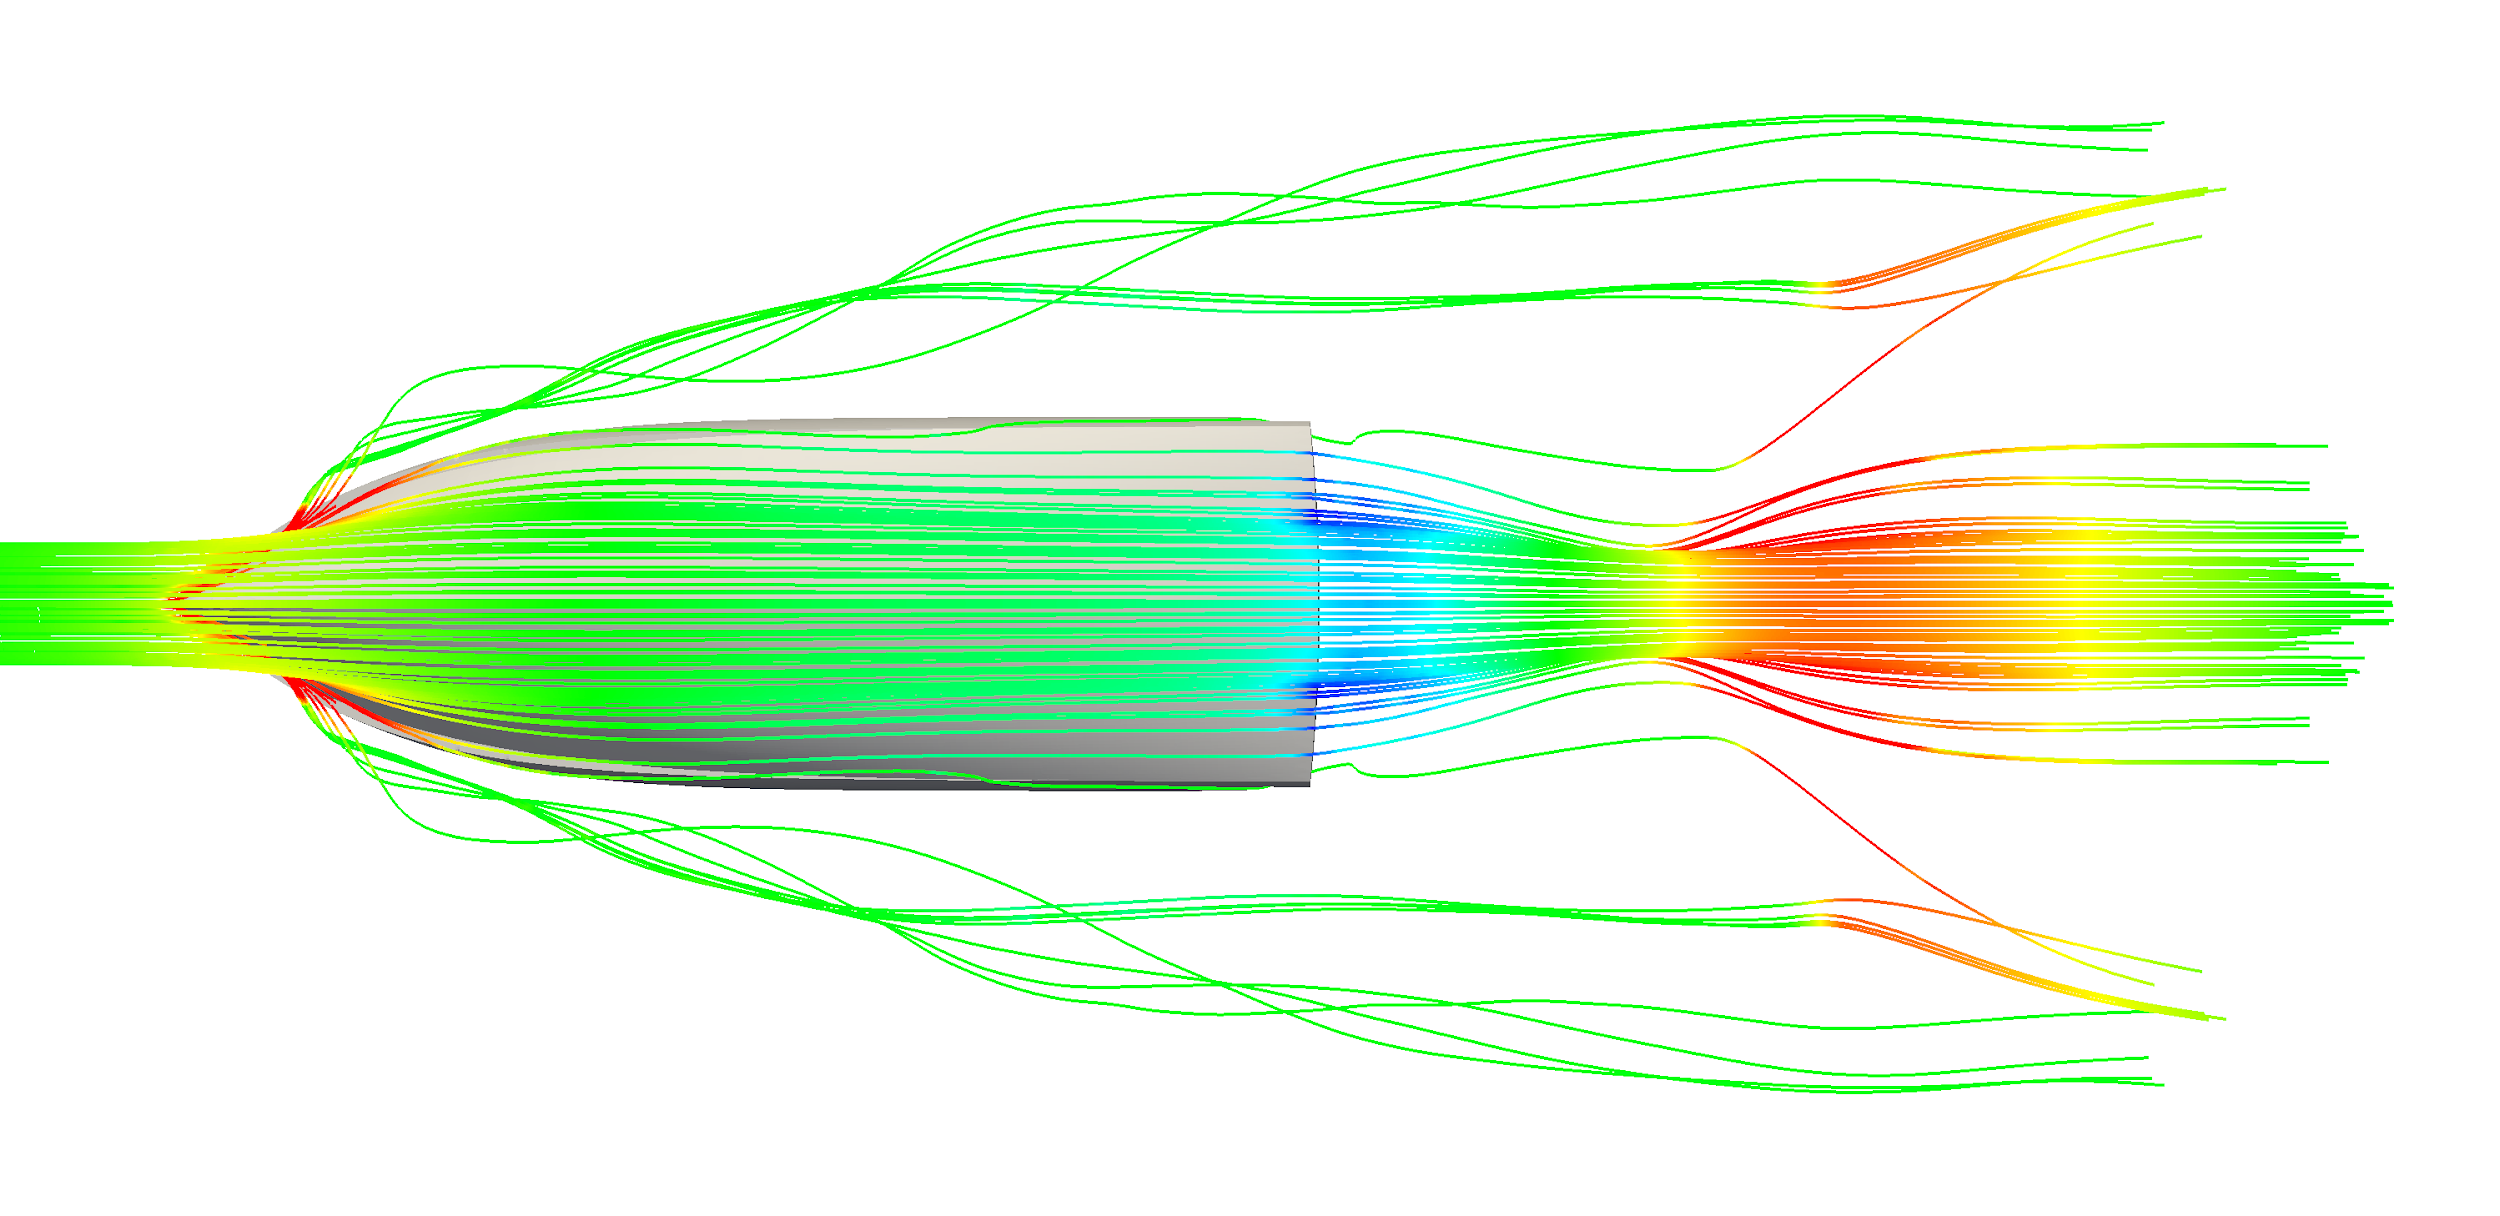 Streamlines from a ship resistance simulation